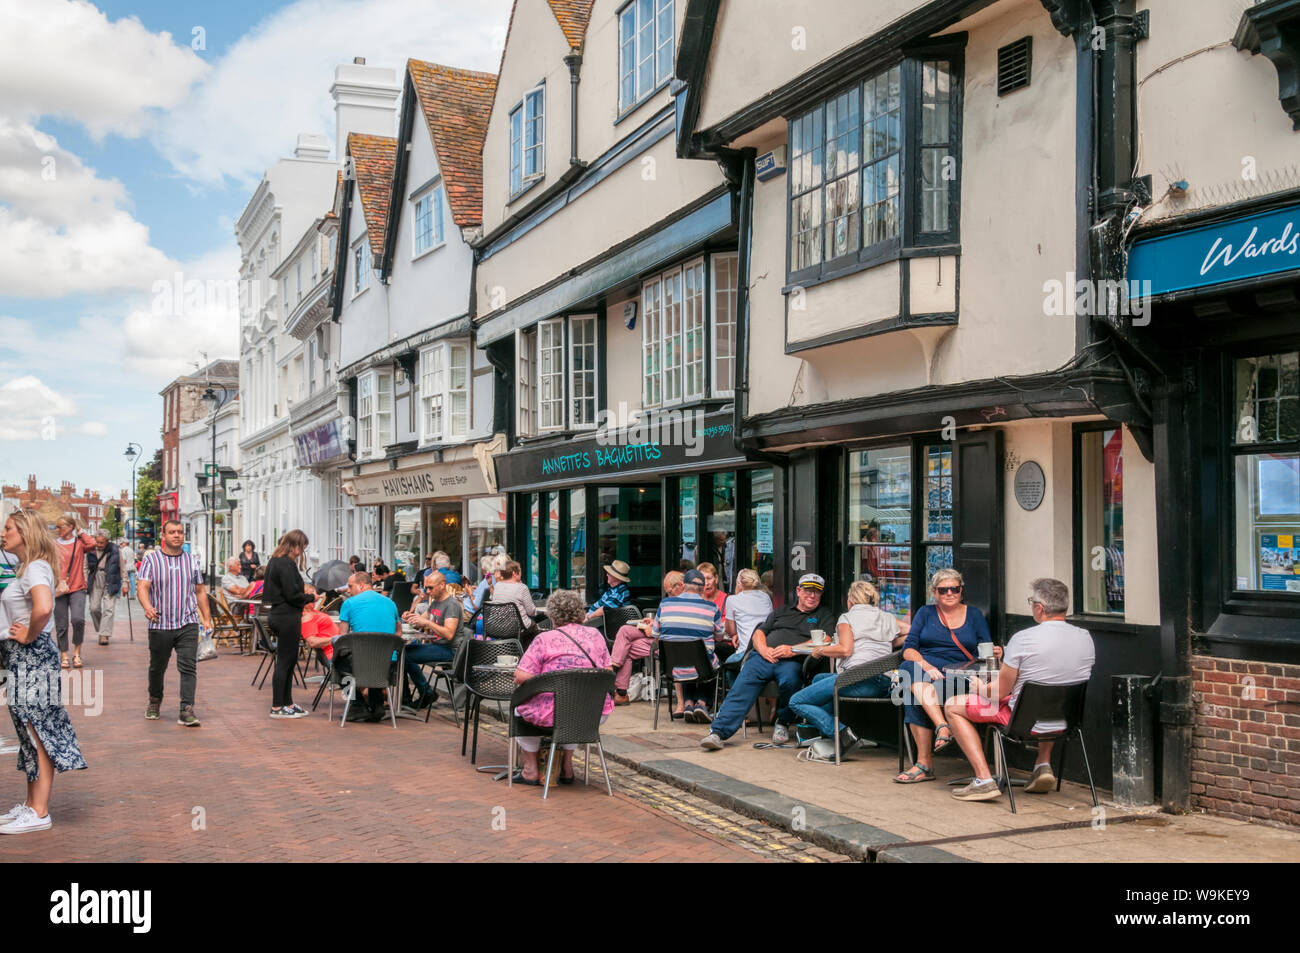 People sitting outside cafes in Court Street, Faversham, Kent. Stock Photo